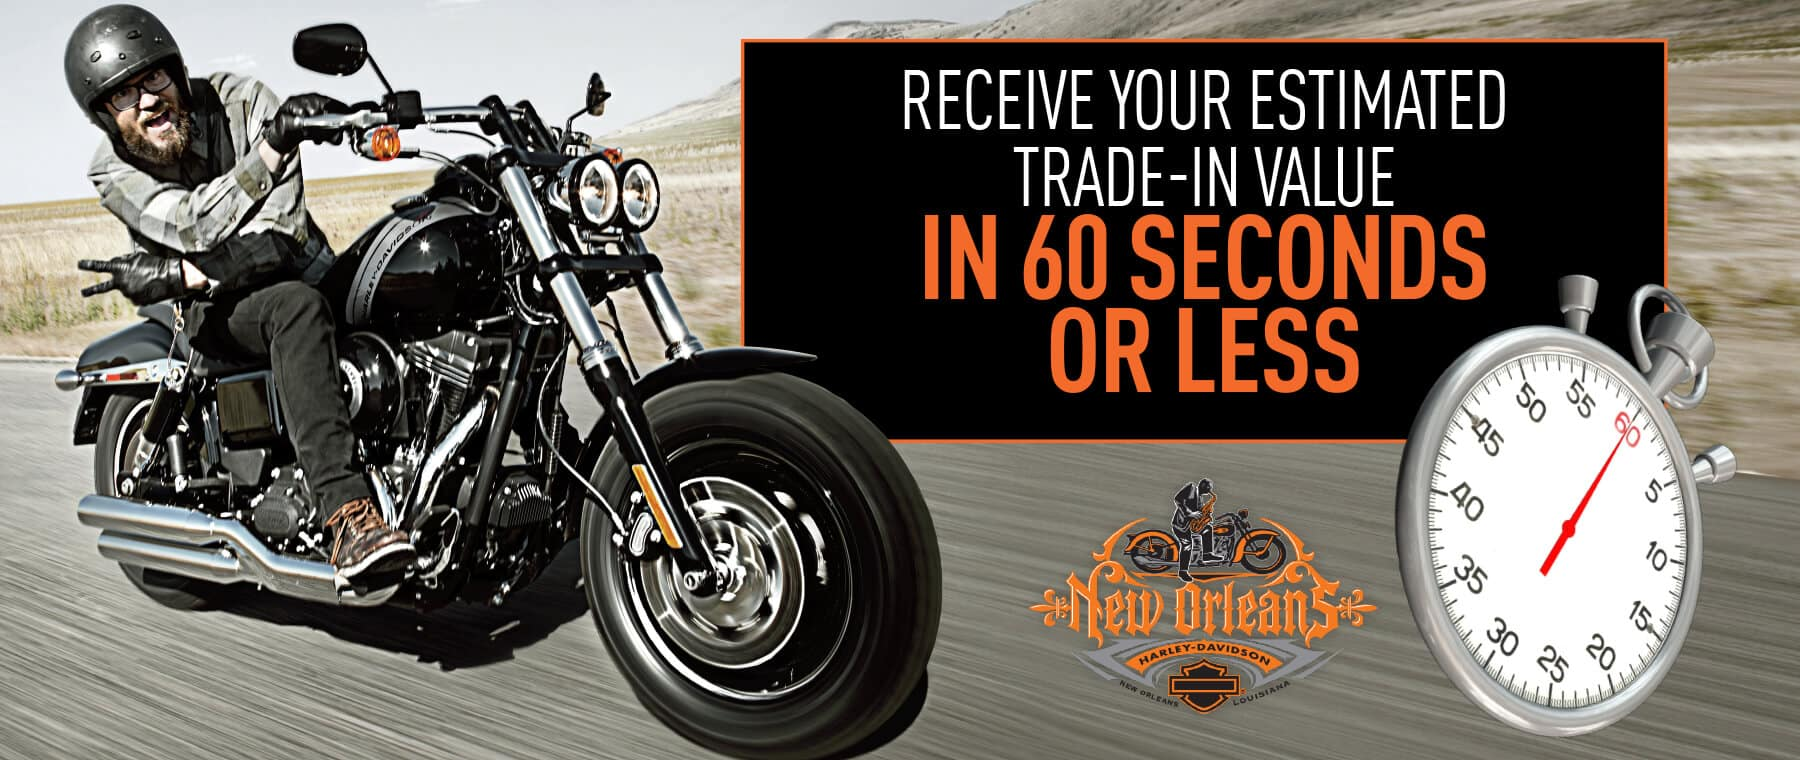 2020.07.22_New-Orleans-H-D-Value-Your-Trade_S47870ll-6